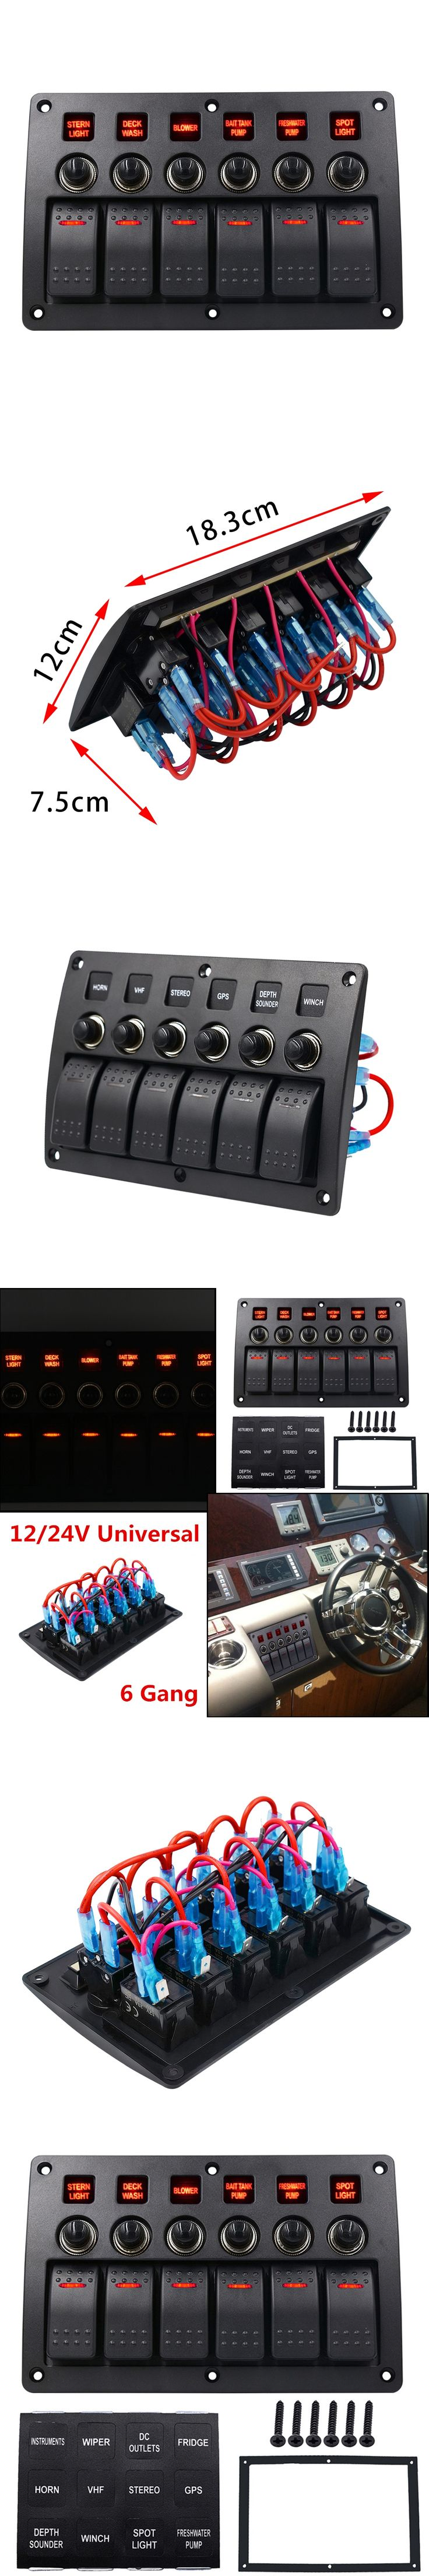 Boat Rocker Switch Panel 3 PIN 6 Gang 12v/24v Red Led Car Marine Circuit Breakers Charger Overload Protected Switch Panel